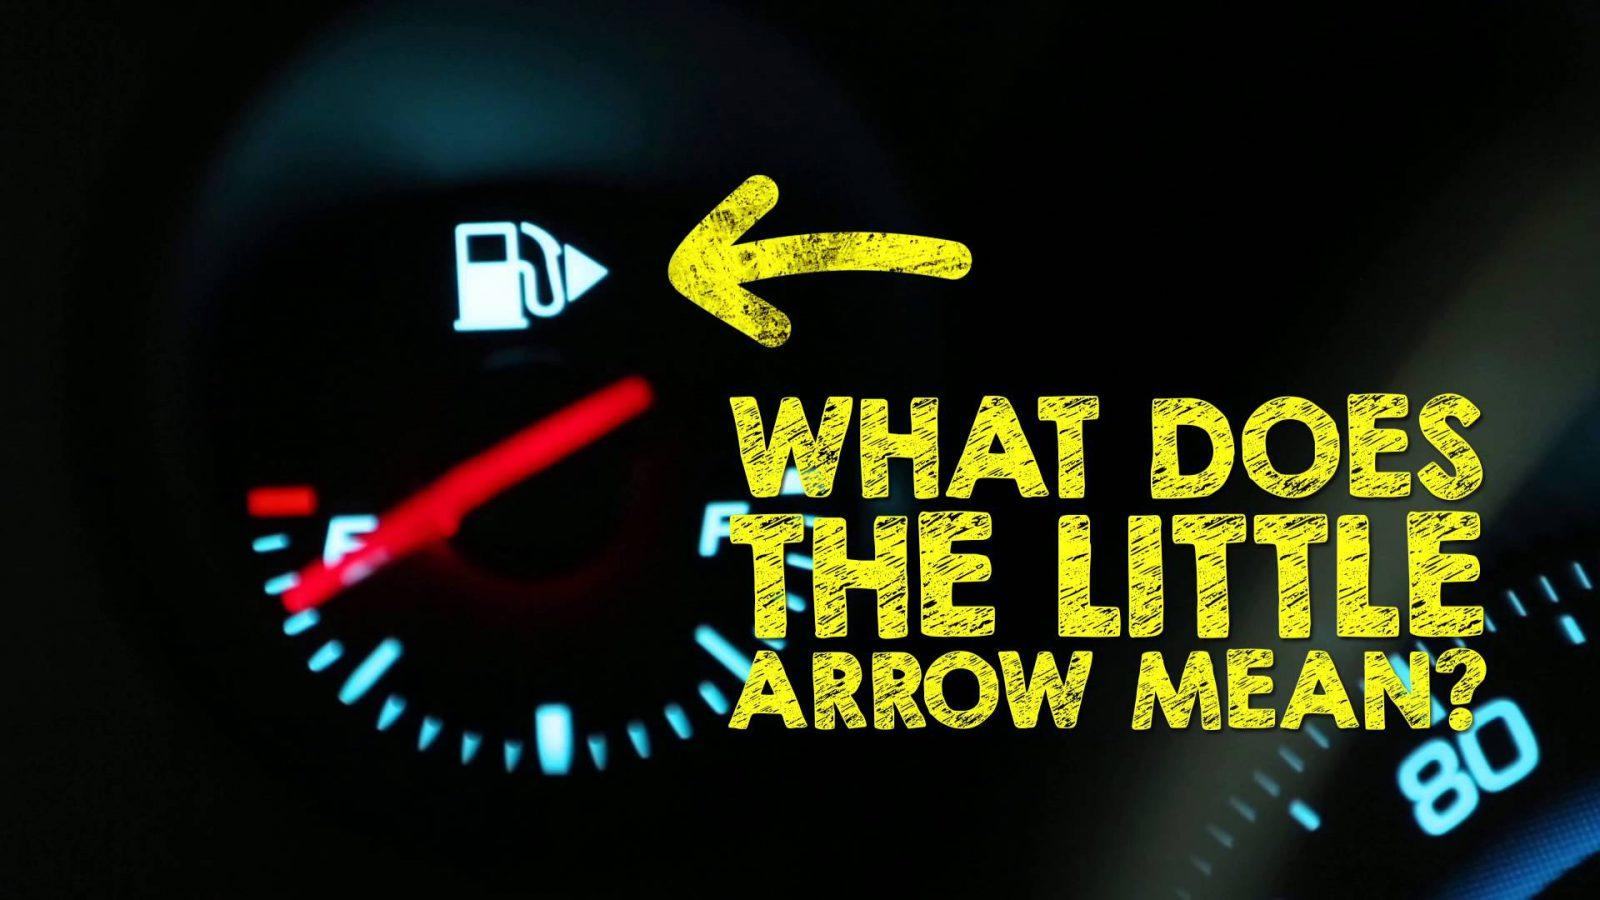 What Is The Arrow Symbol On The Fuel Indicator For Car